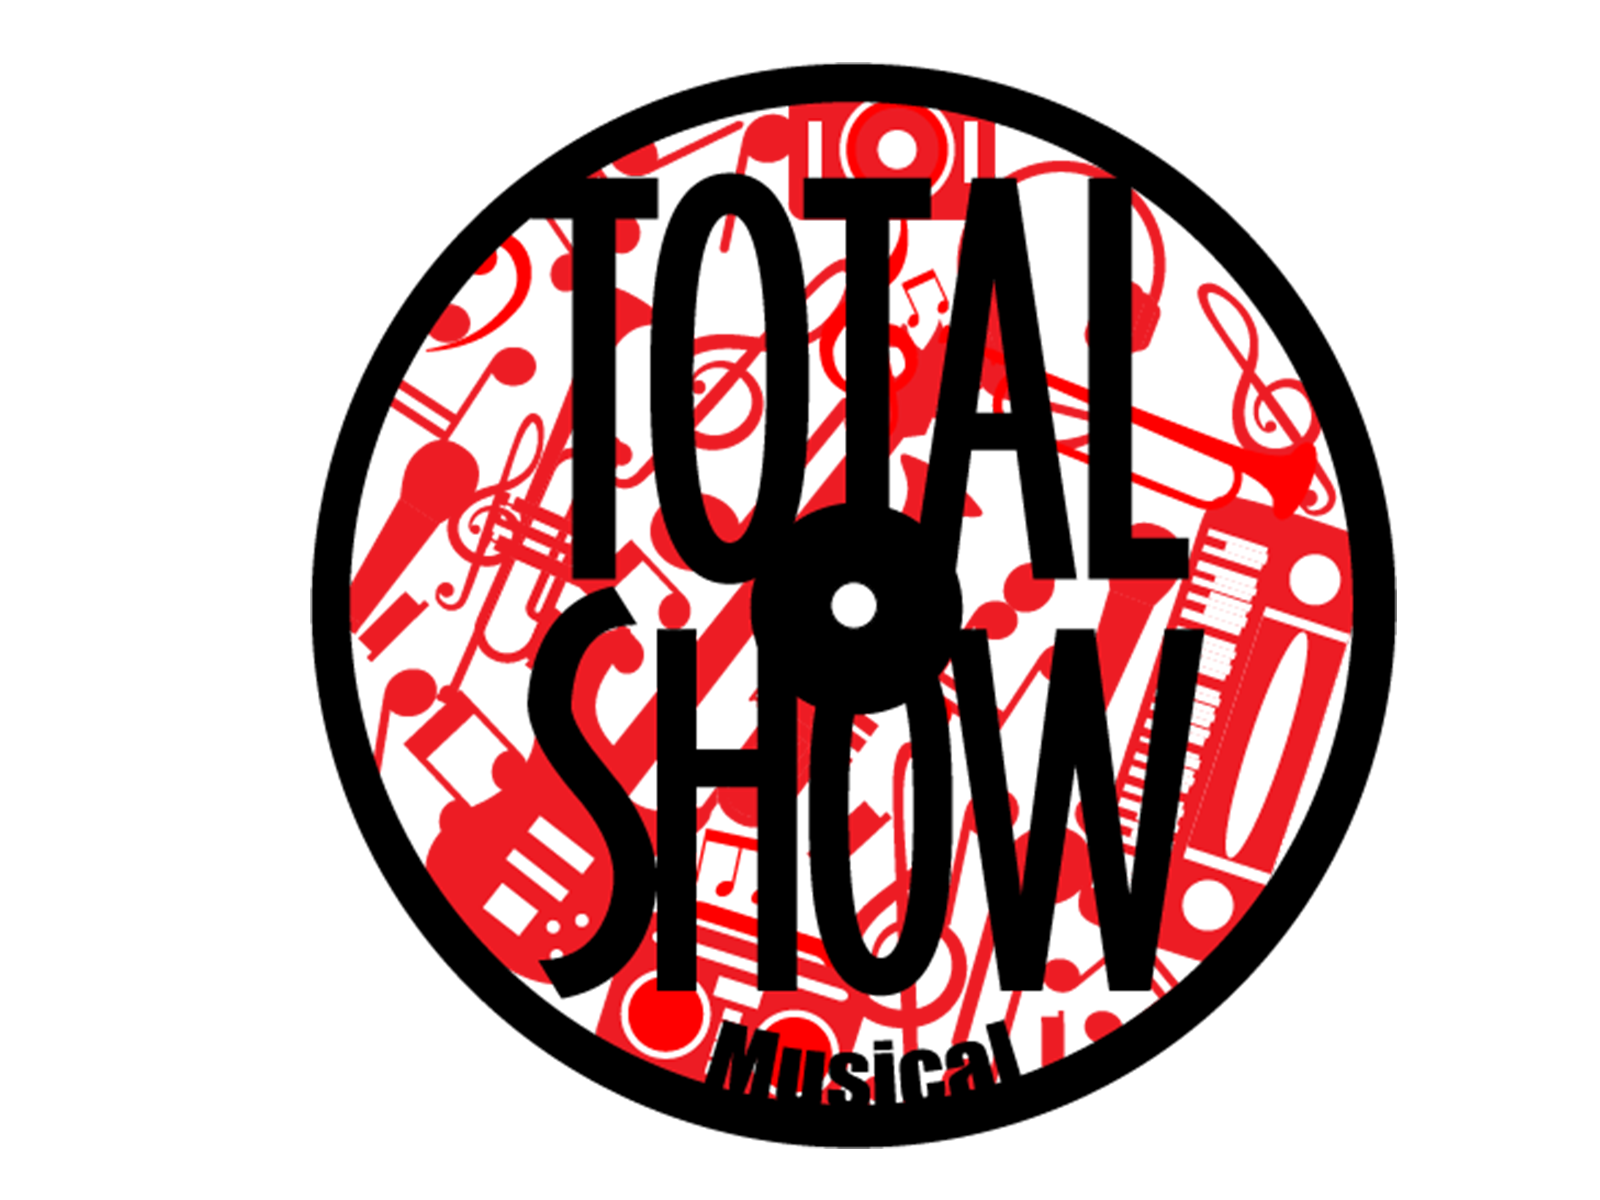 Total Show Musical